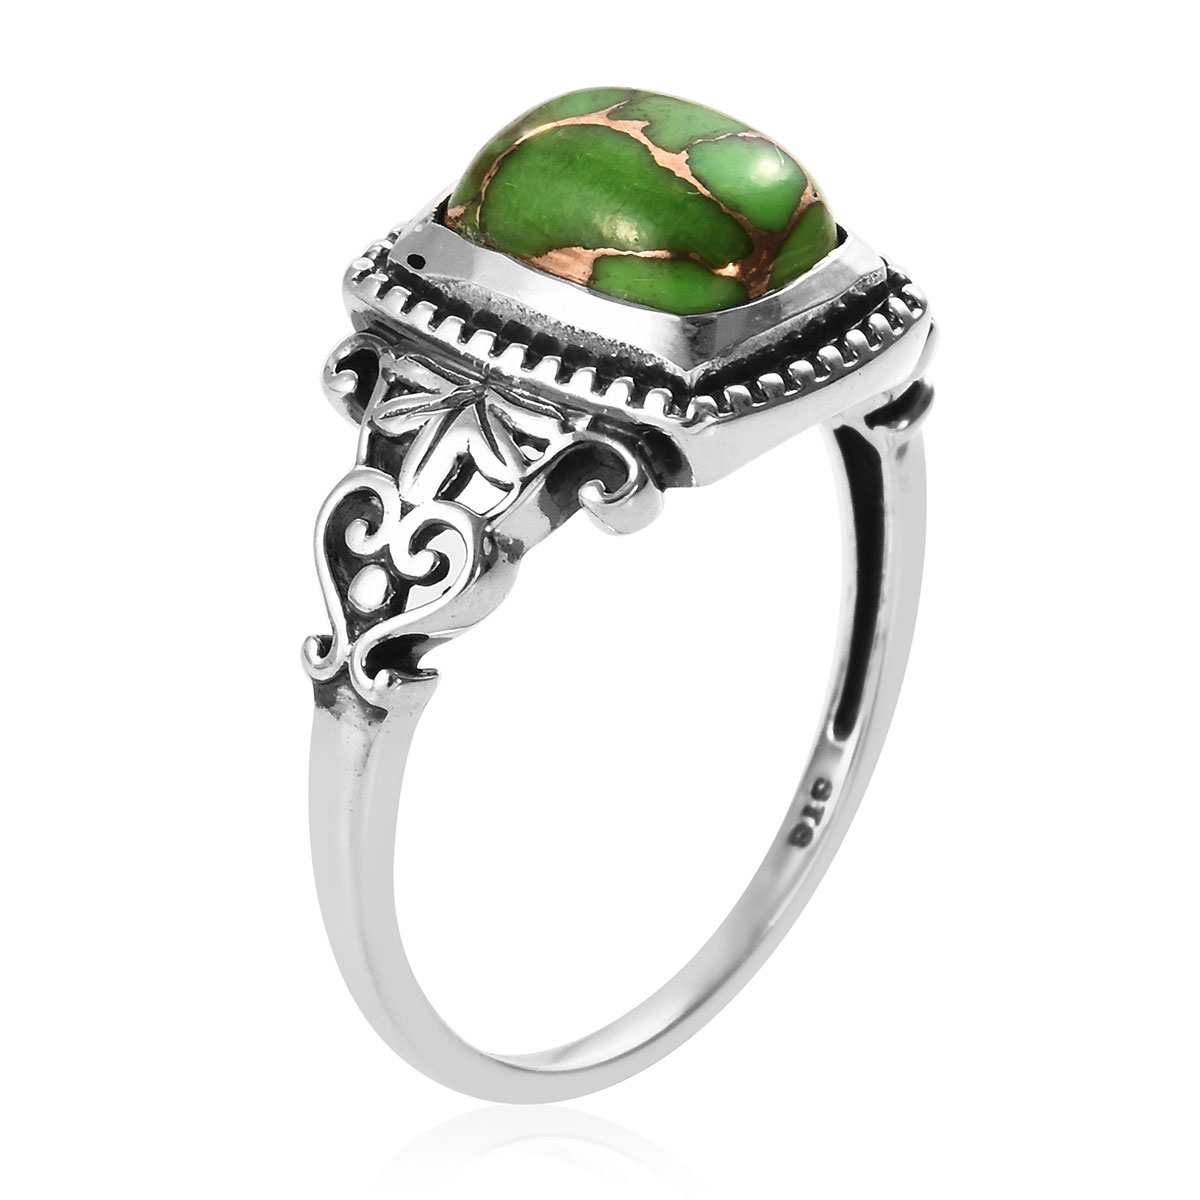 Mojave Green Turquoise Ring in Sterling Silver (Size 10.0) 3.85 ctw